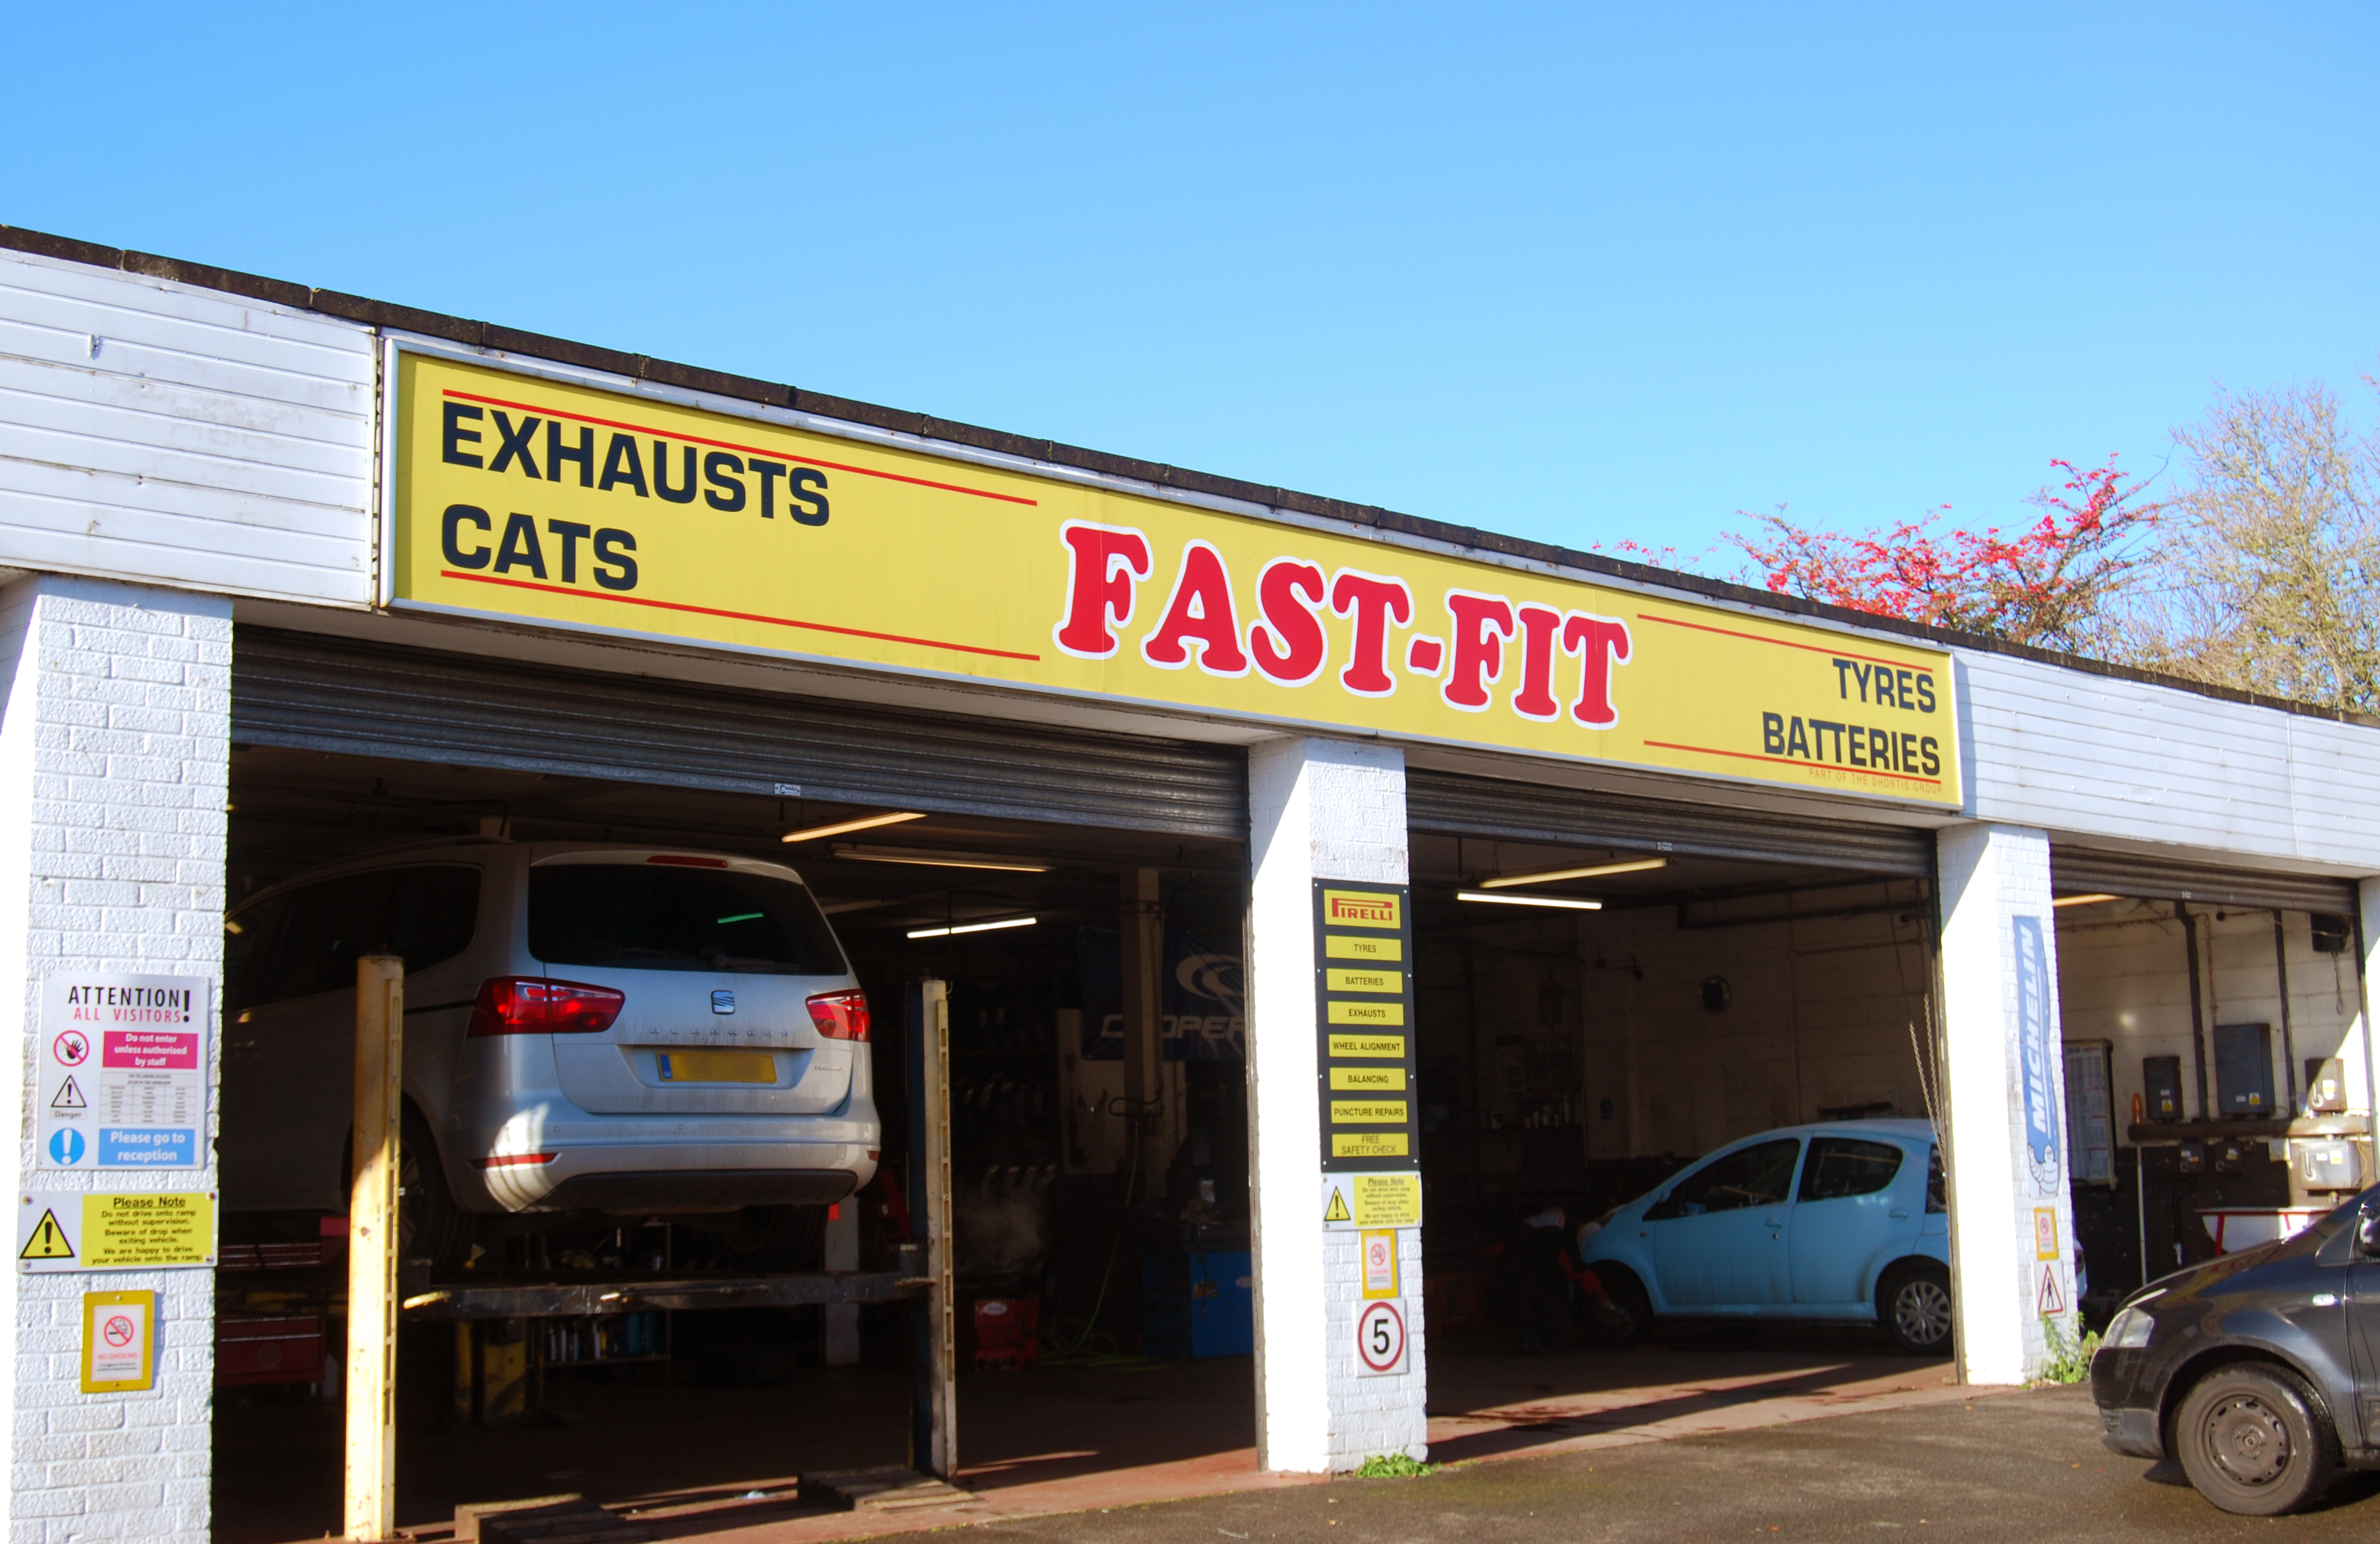 Fast-Fit Tyres & Exhausts - Ipswich, Suffolk IP1 5DW - 01473 748411 | ShowMeLocal.com